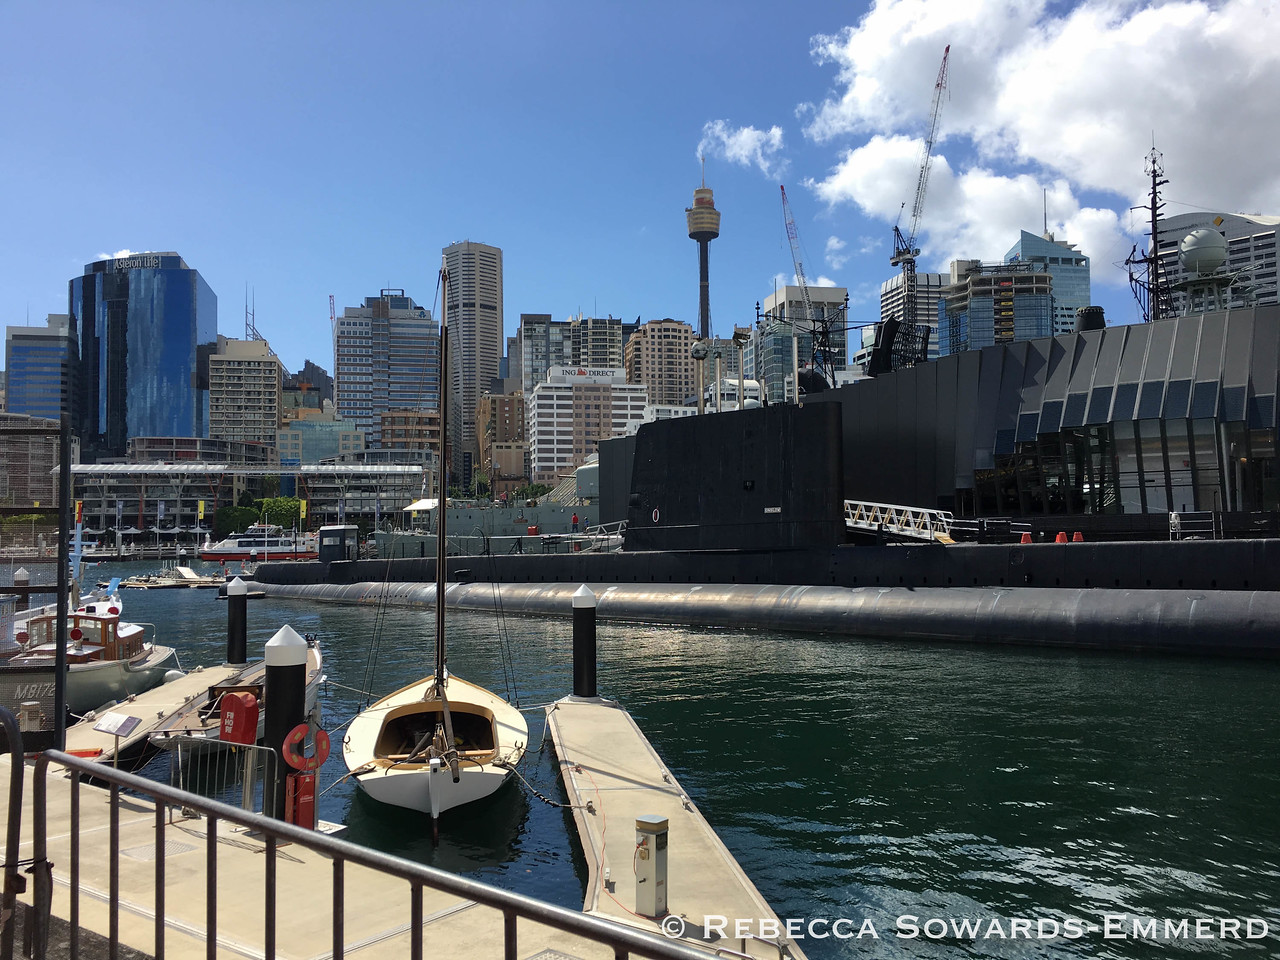 Walking around the harbour and looking back at the city